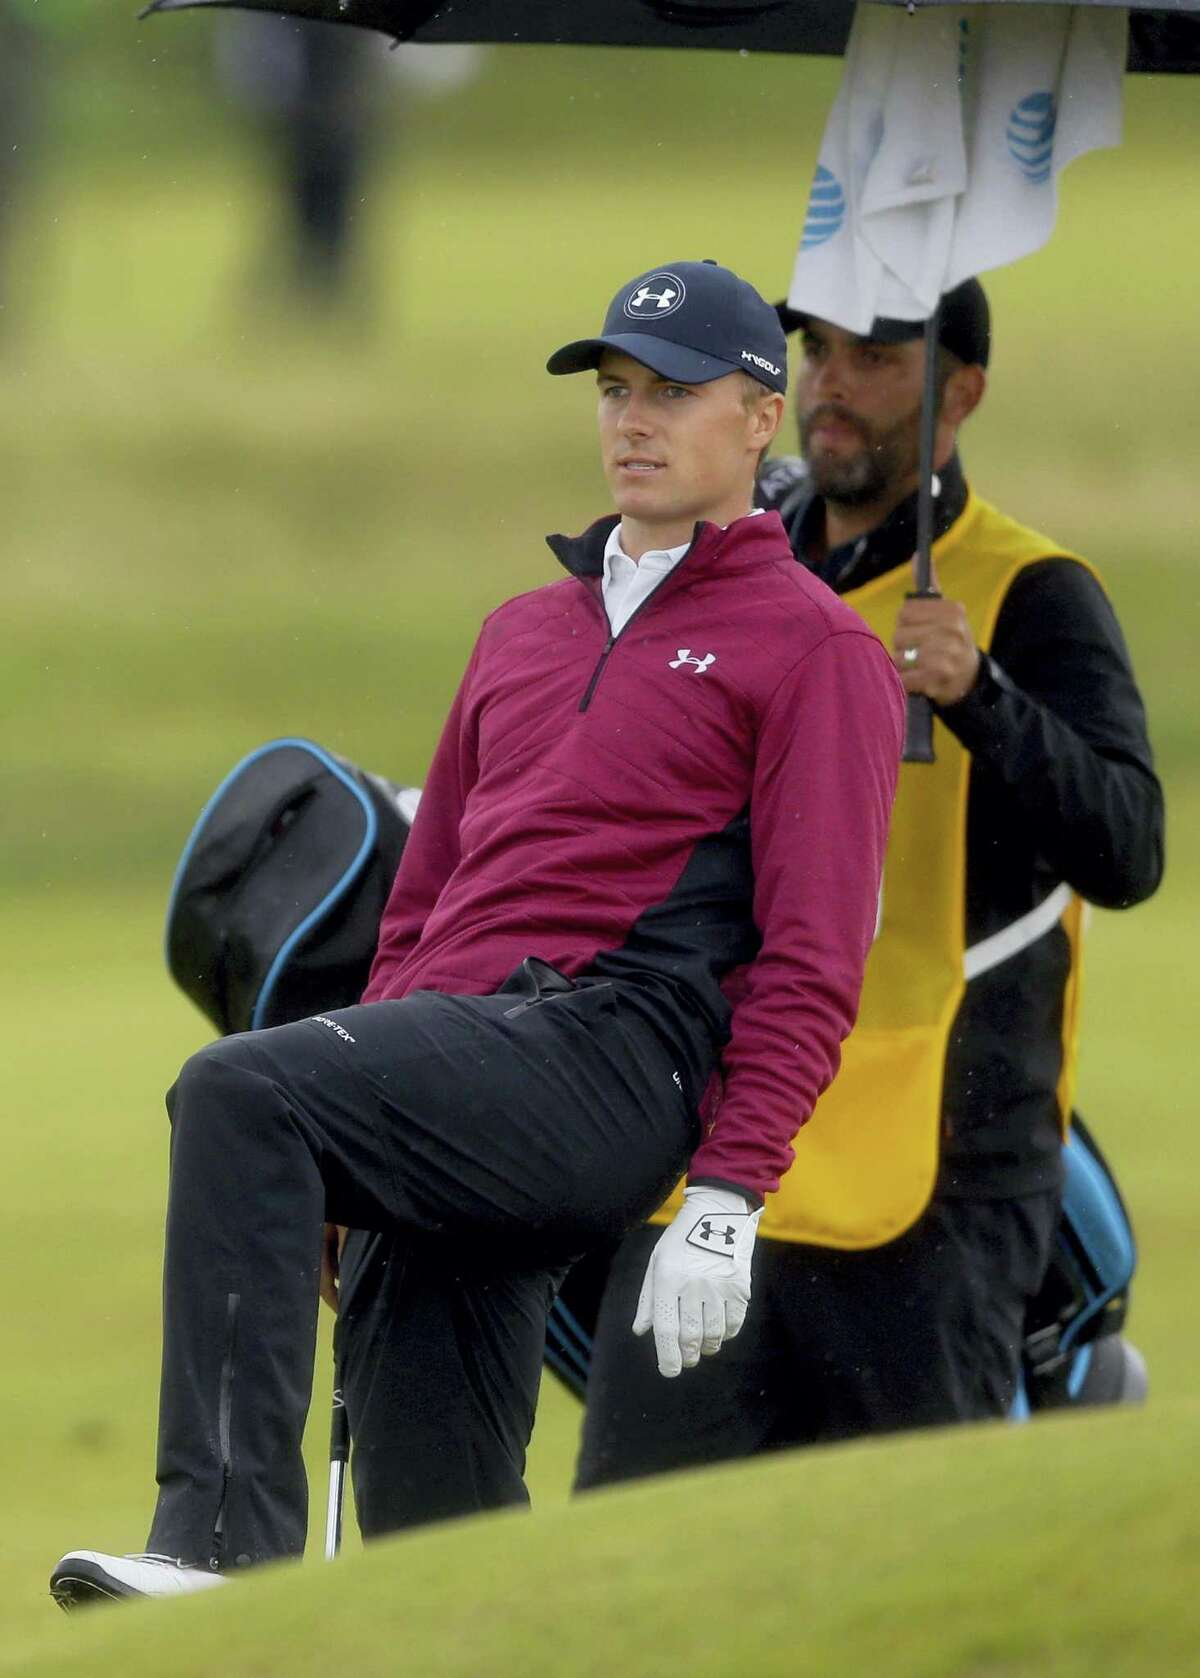 Jordan Spieth of the United States reacts after a shot on the 11th fairway during the second round of the British Open Golf Championship, at Royal Birkdale, Southport, England, Friday.